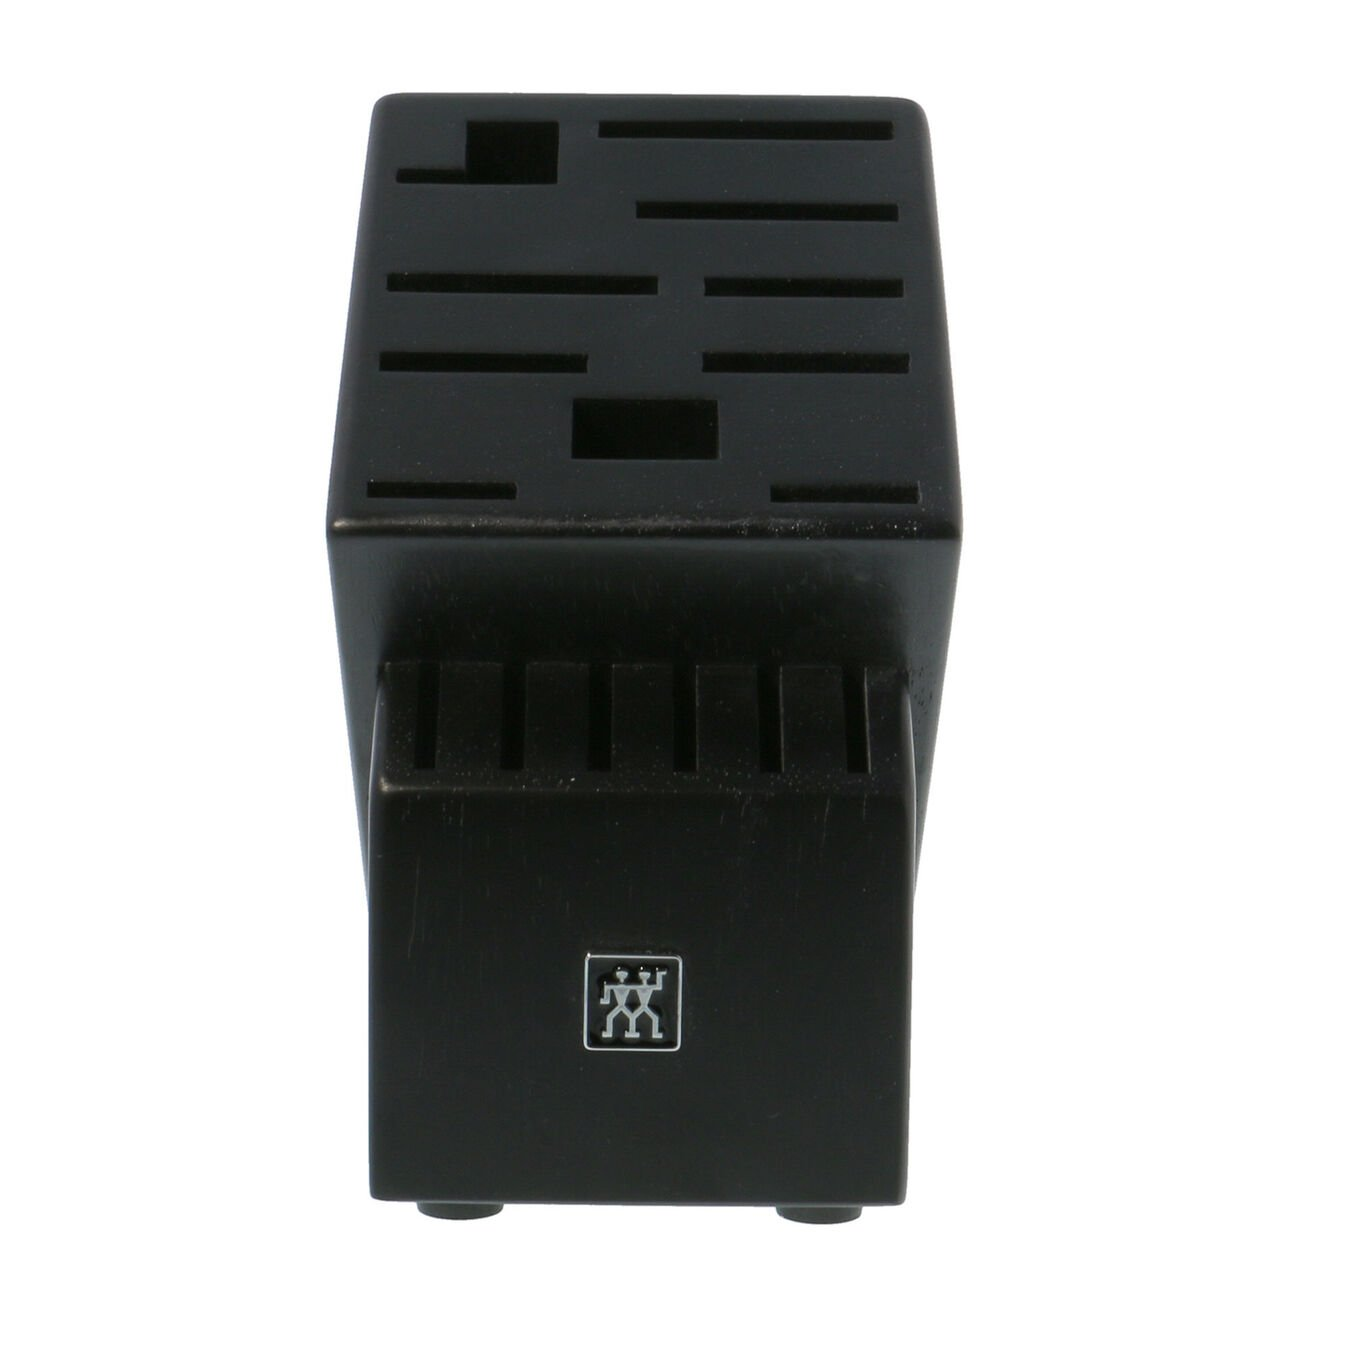 Rubberwood Black 16-slot block,,large 2